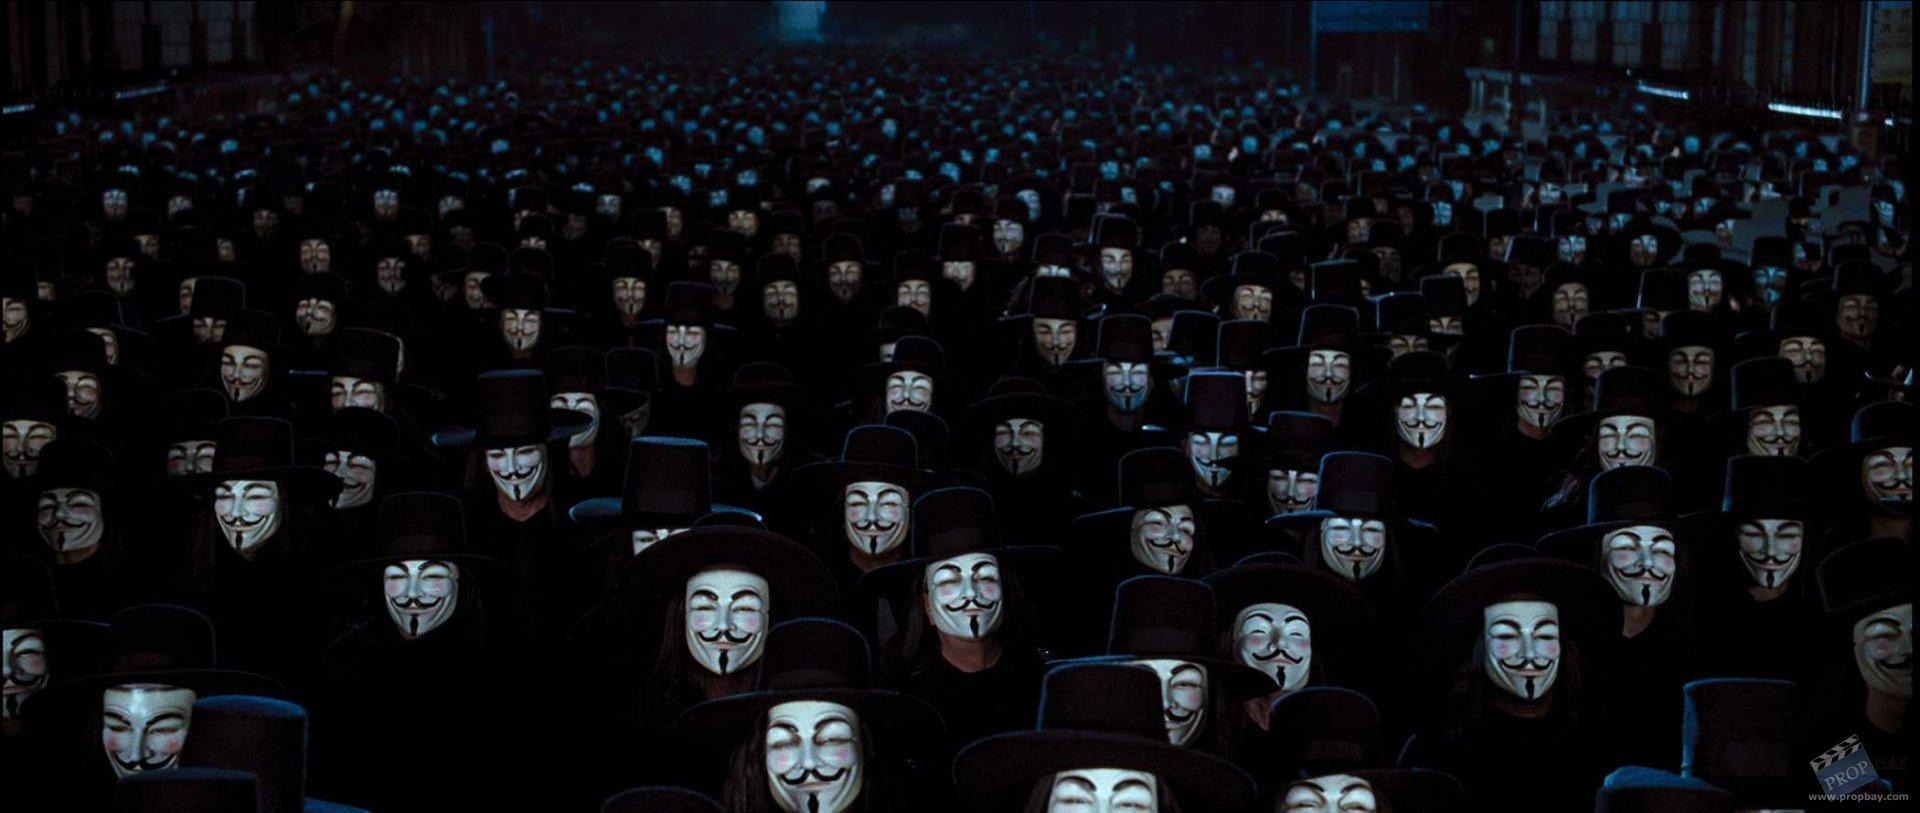 v-for-vendetta-masks